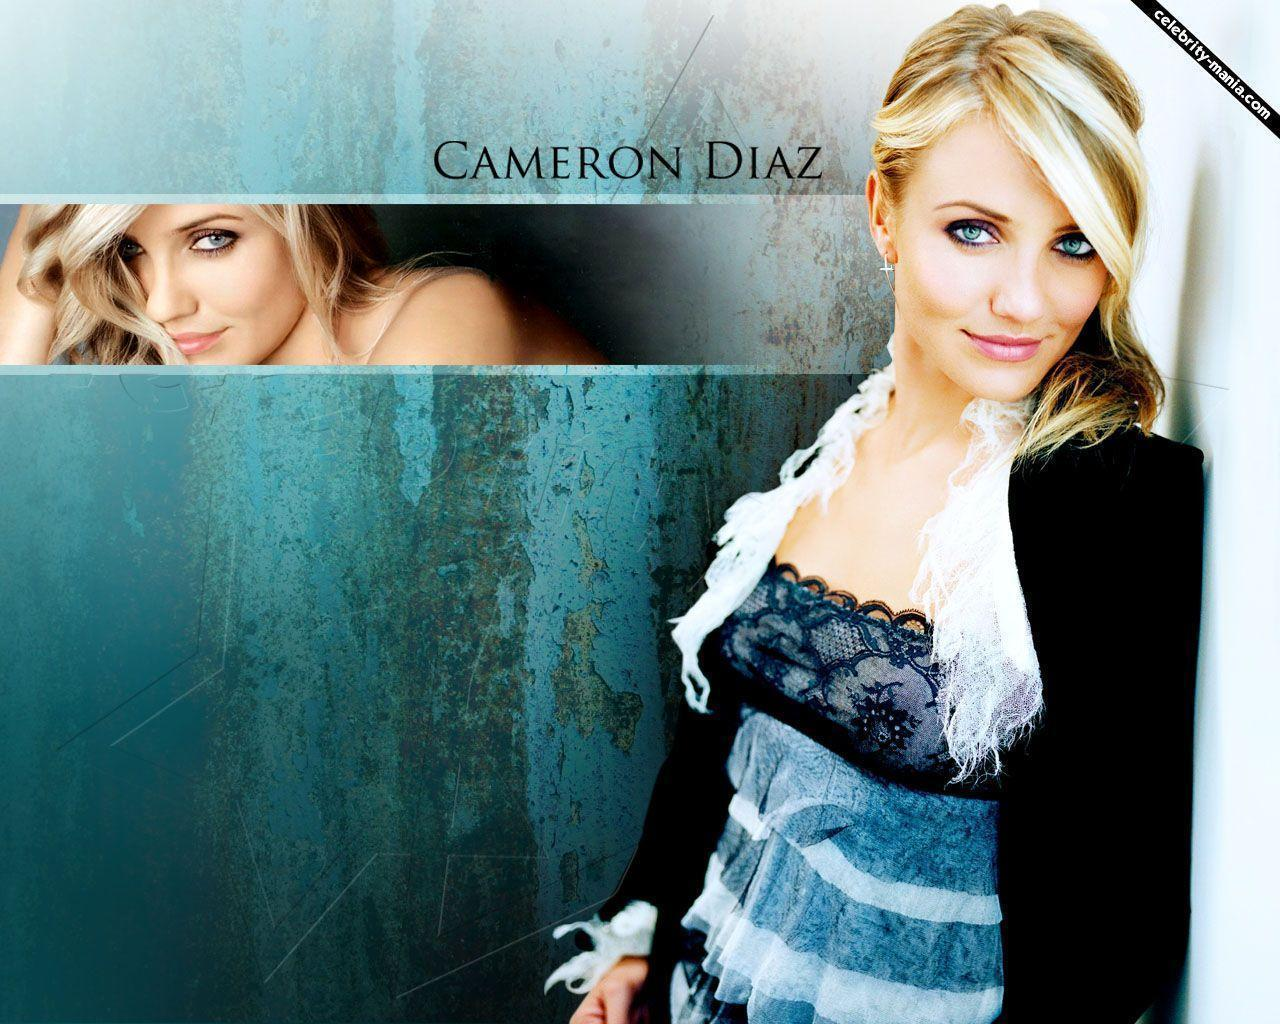 Cameron Diaz Wallpaper | Hd Wallpapers